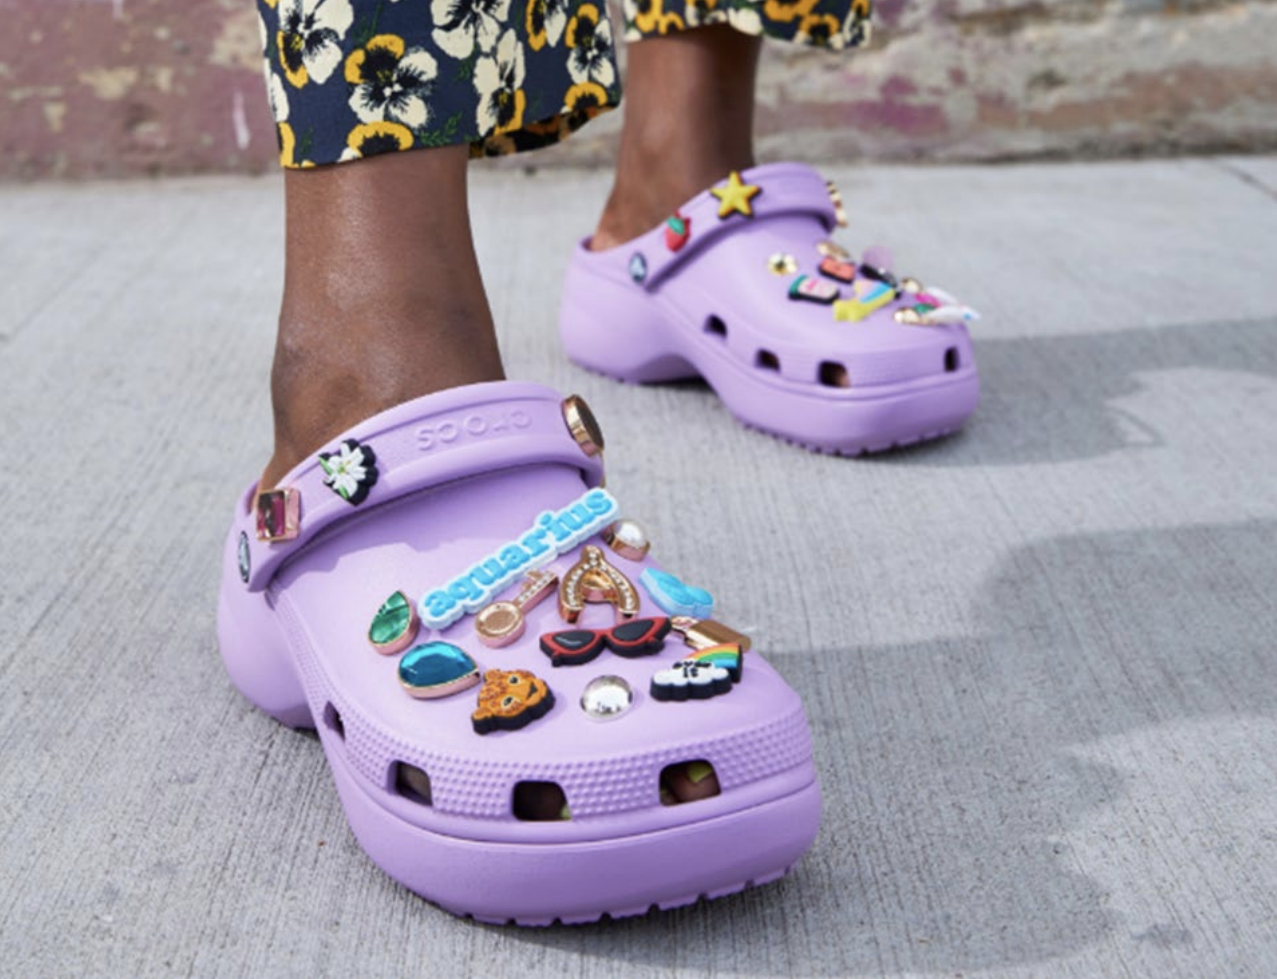 Crocs raised its full-year outlook for the second time in 2021 amid record revenues, and has committed to net zero emissions by 2030.